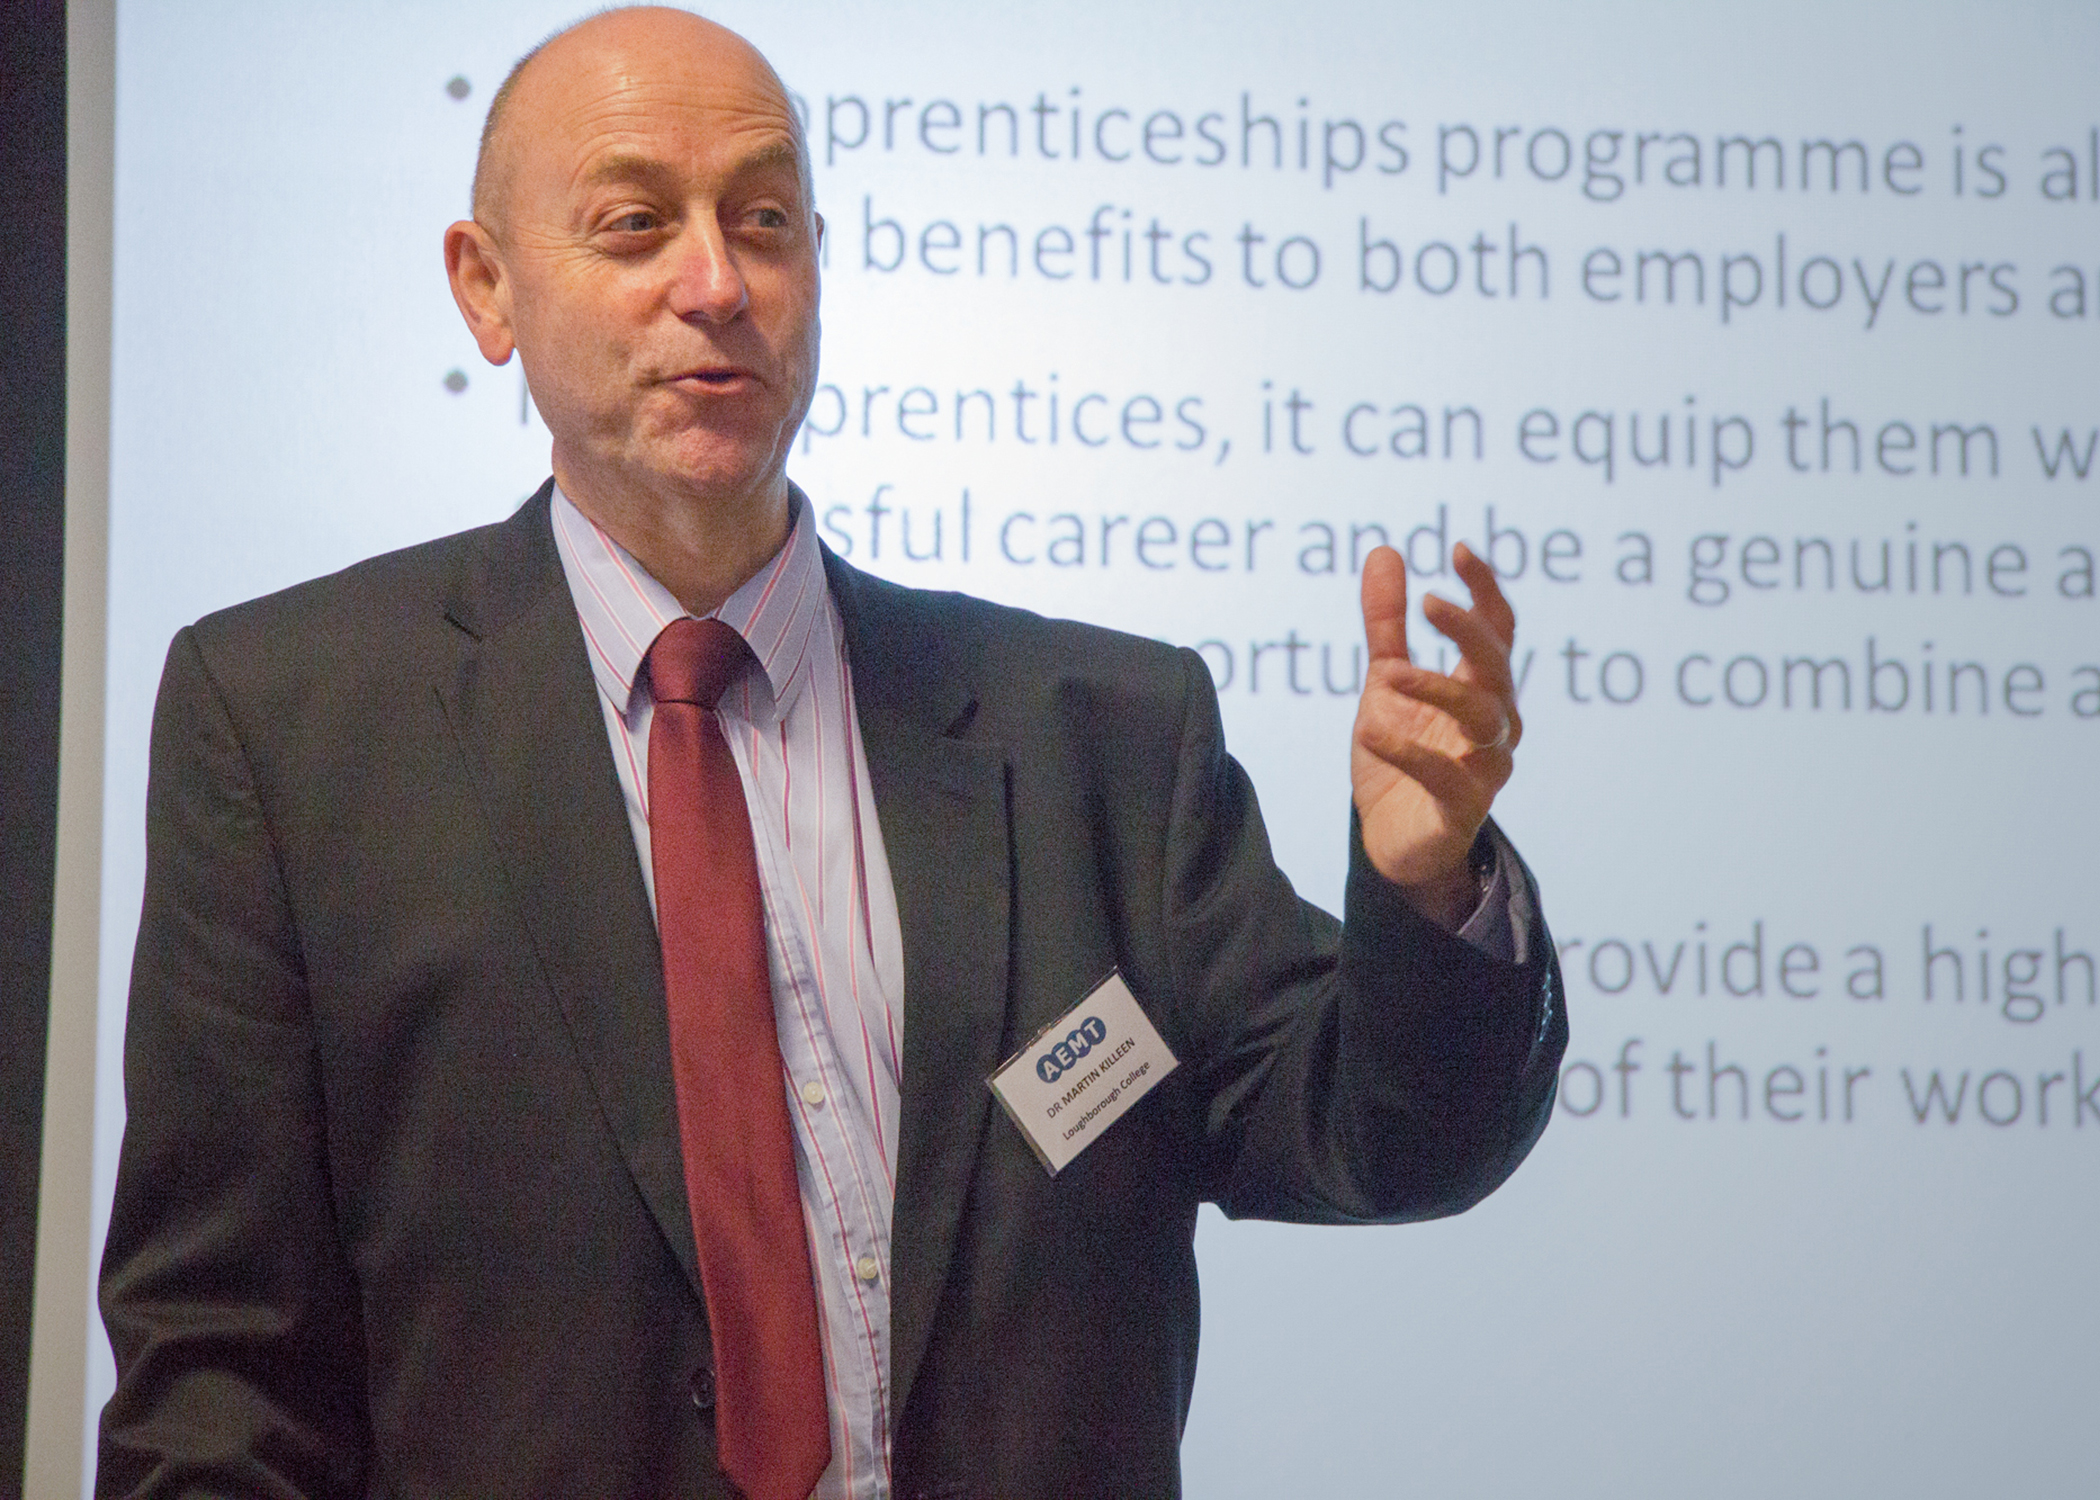 Dr. Martin Killeen joins AEMT as Lead Lecturer and Technical Specialist